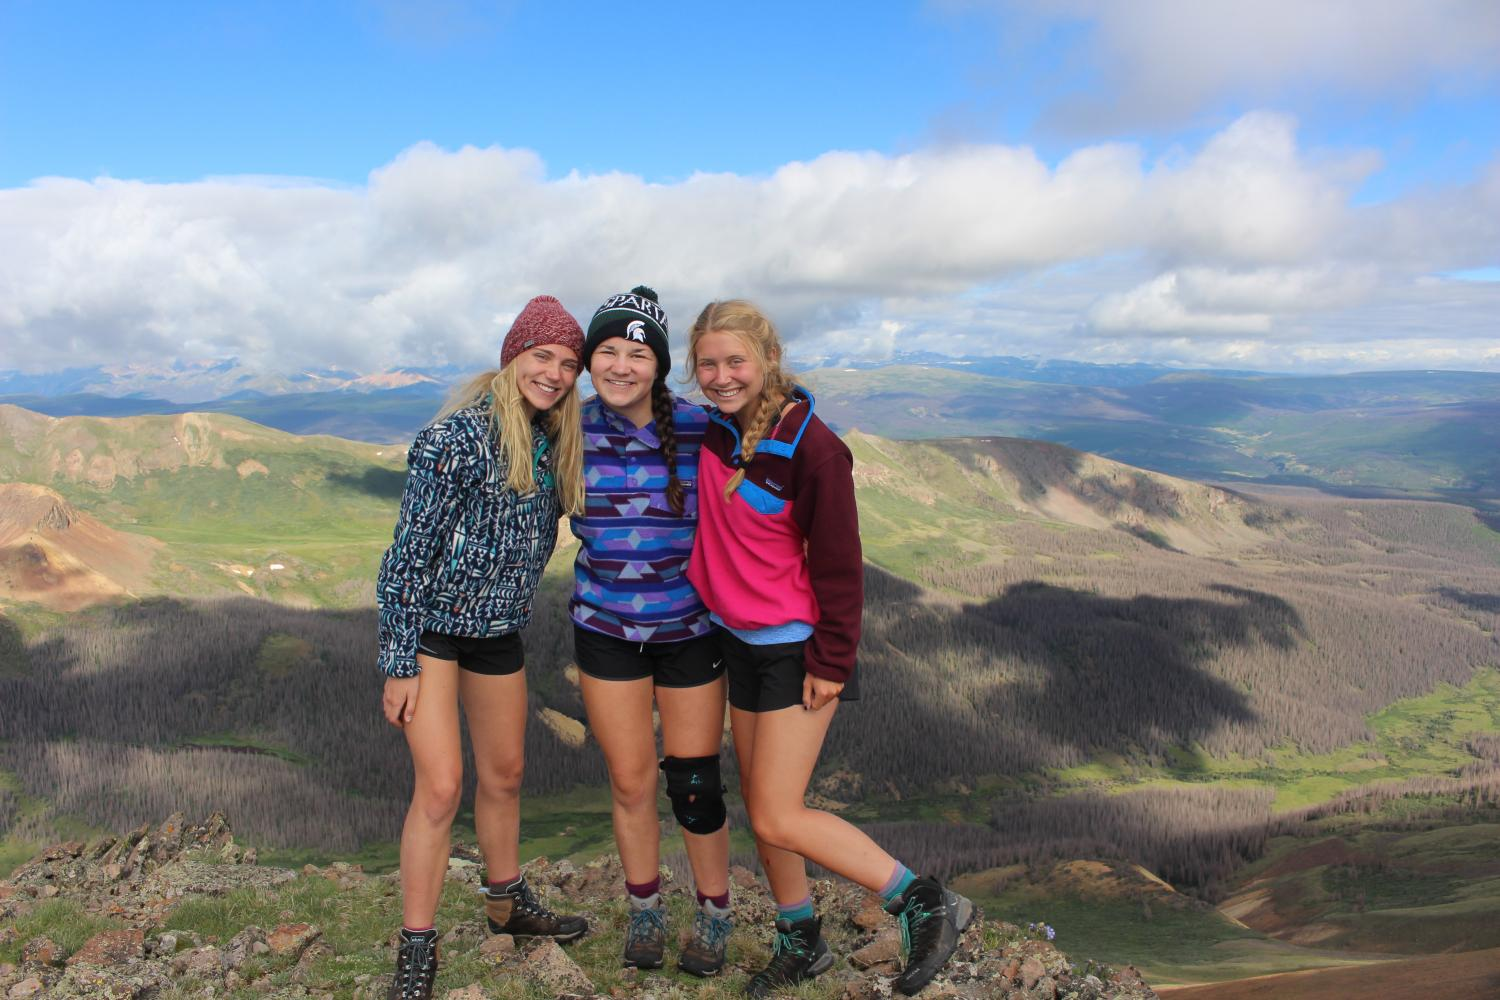 A group of senior girls overcome obstacles and climb a mountain